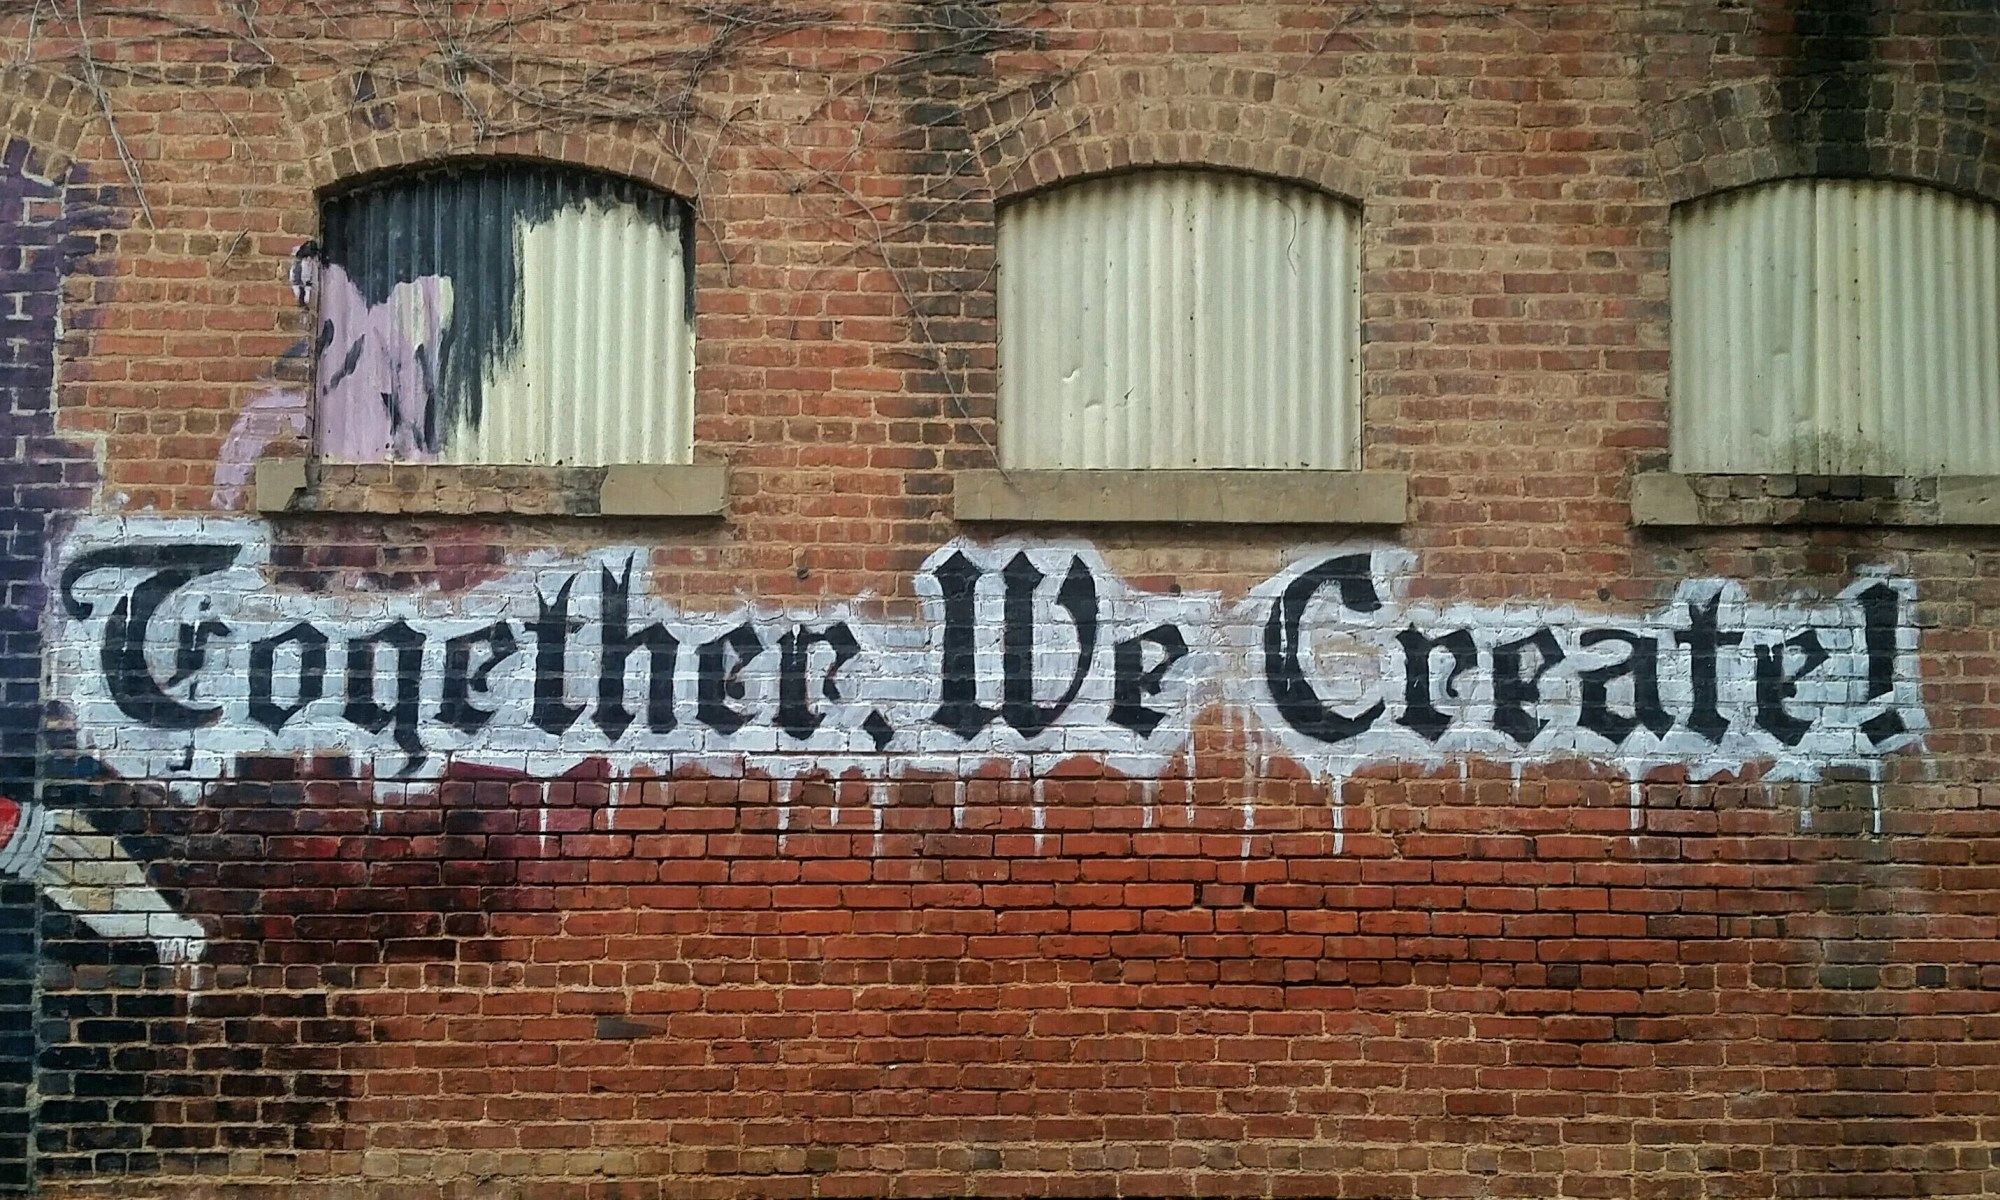 Graffiti: Together, We Create! on a brick wall